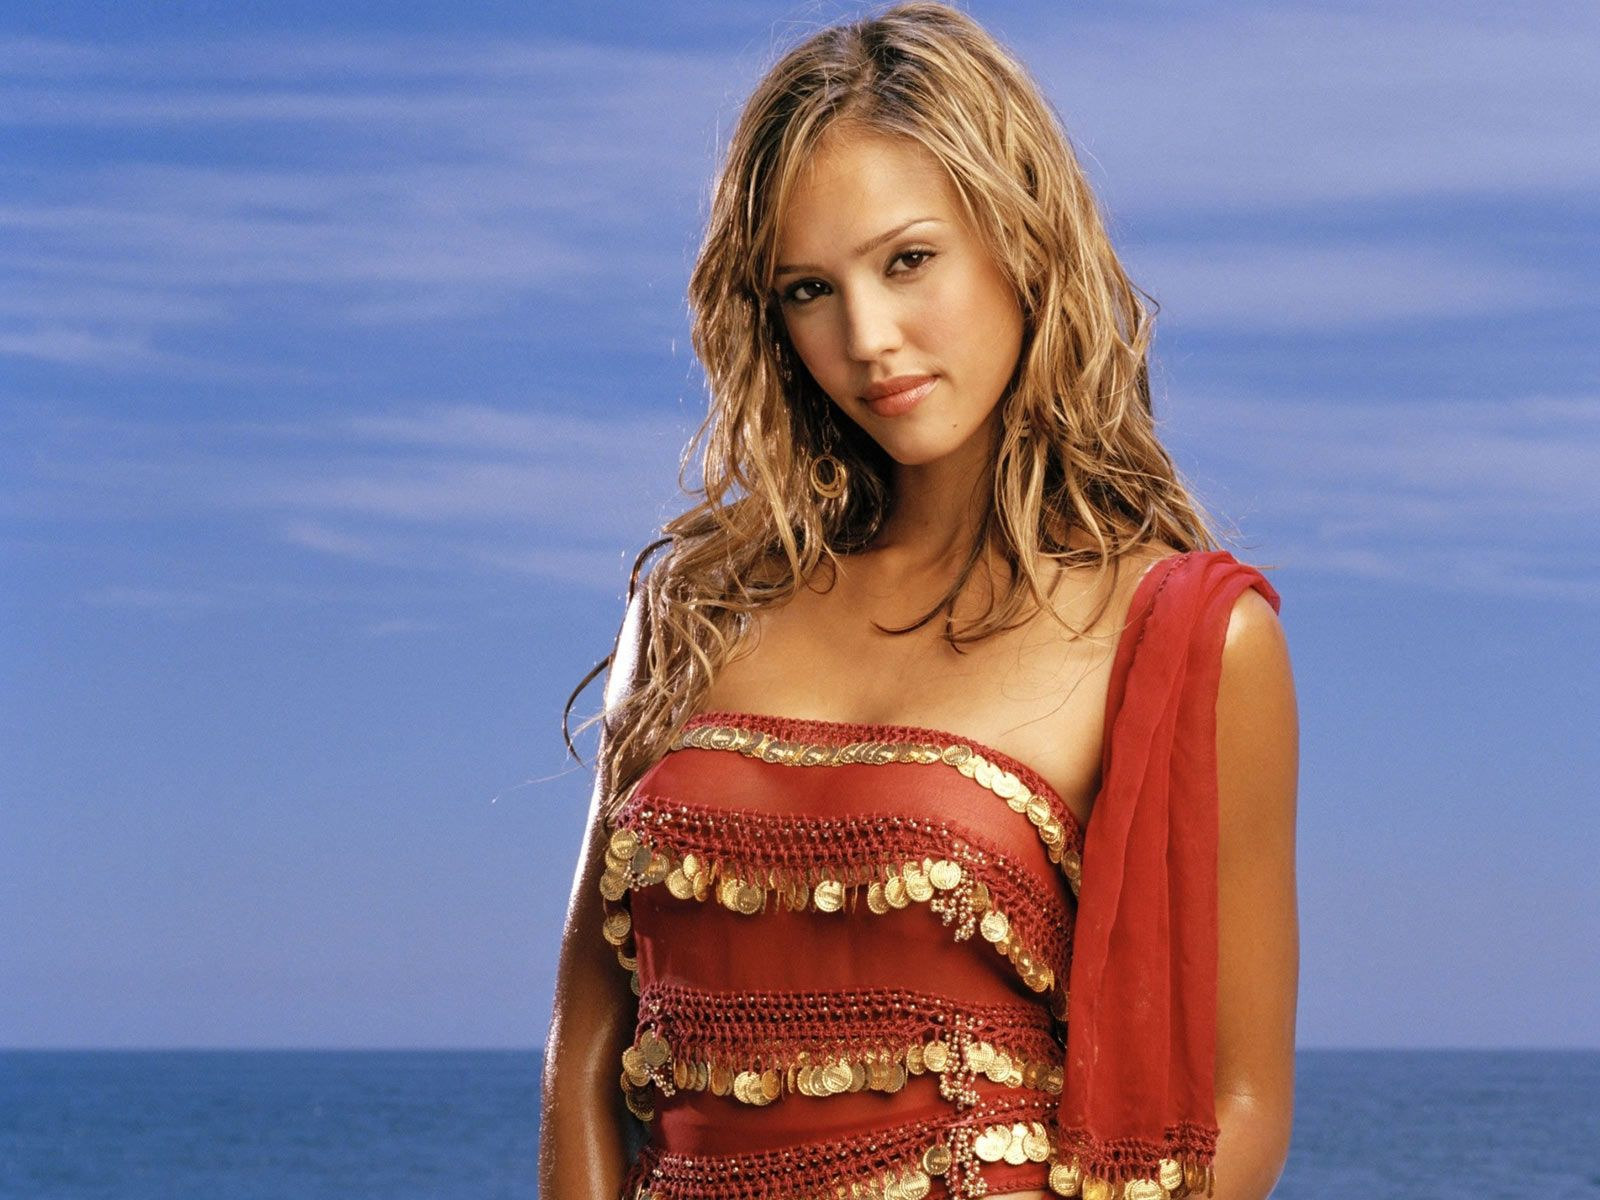 http://2.bp.blogspot.com/-aQbLGFW9Do4/TzFadCTG3GI/AAAAAAAAAe4/CeC-jQwRv6o/s1600/The-best-top-desktop-sexy-jessica-alba-wallpapers-hot-jessica-alba-wallpaper-hd-3.jpg